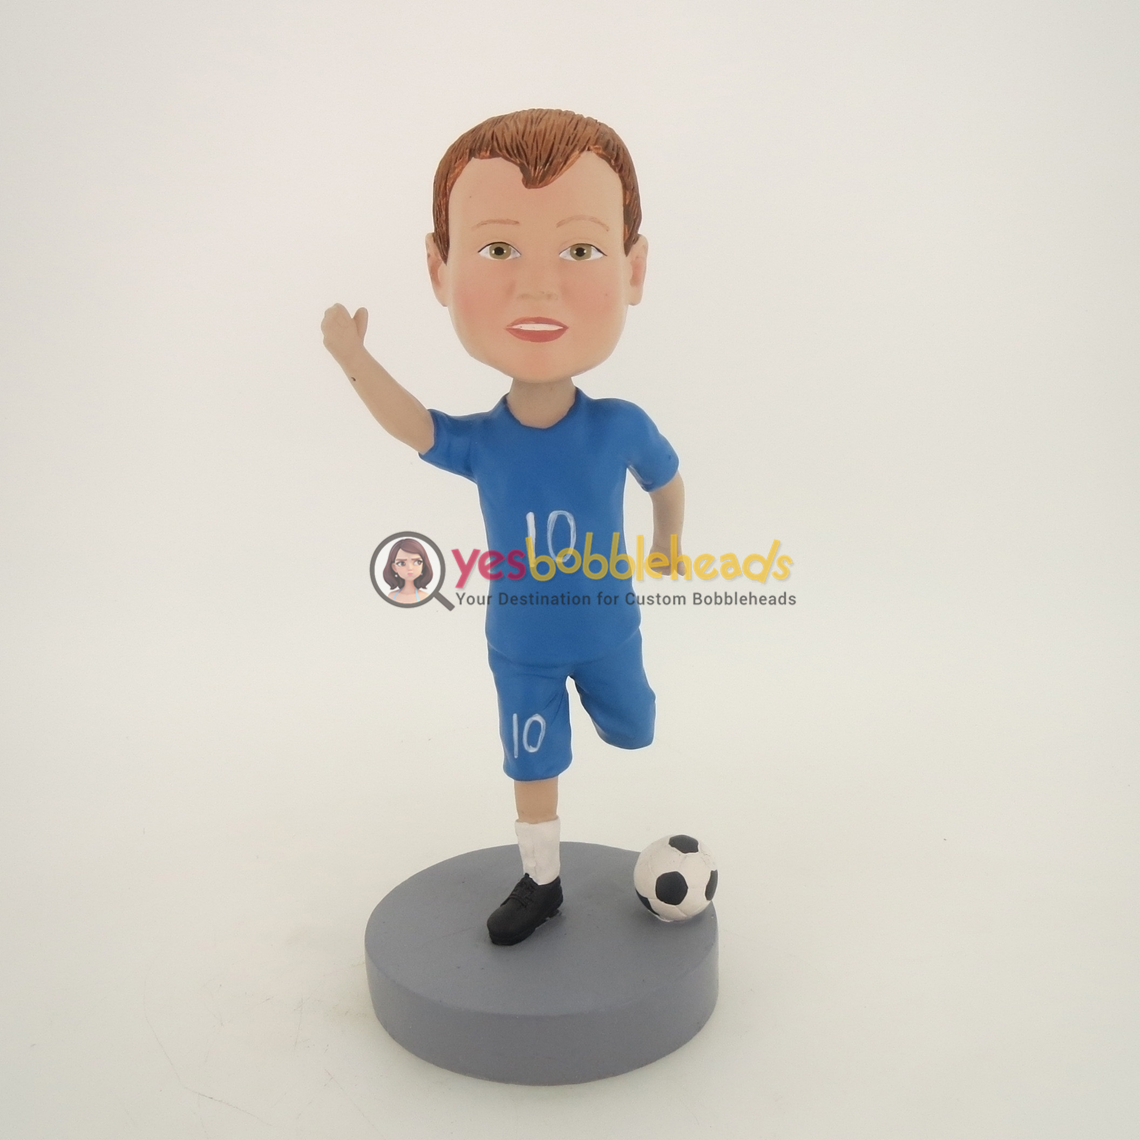 Picture of Custom Bobblehead Doll: Boy Soccer Player